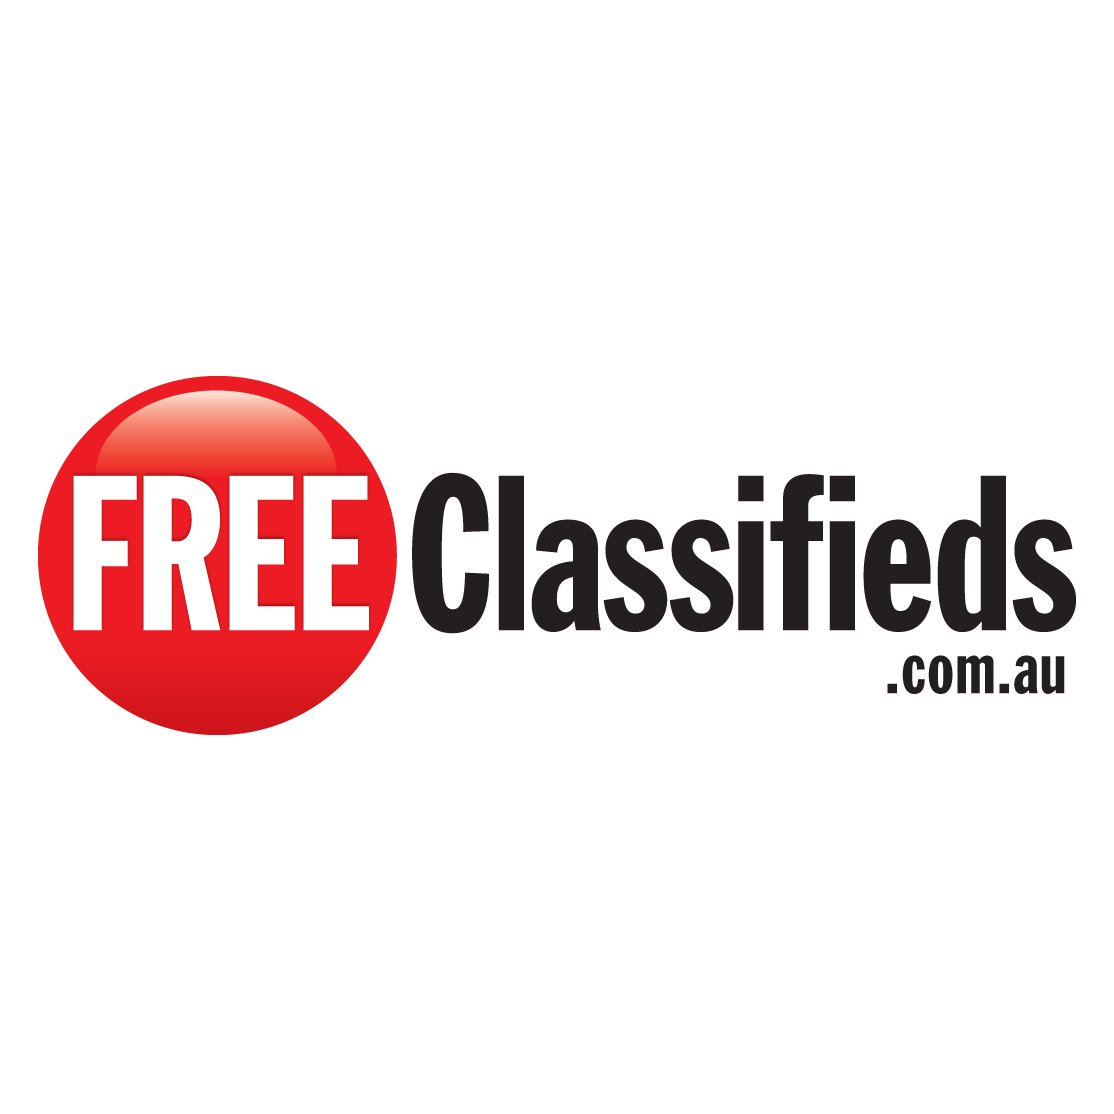 Free Classifieds Aus on Twitter: